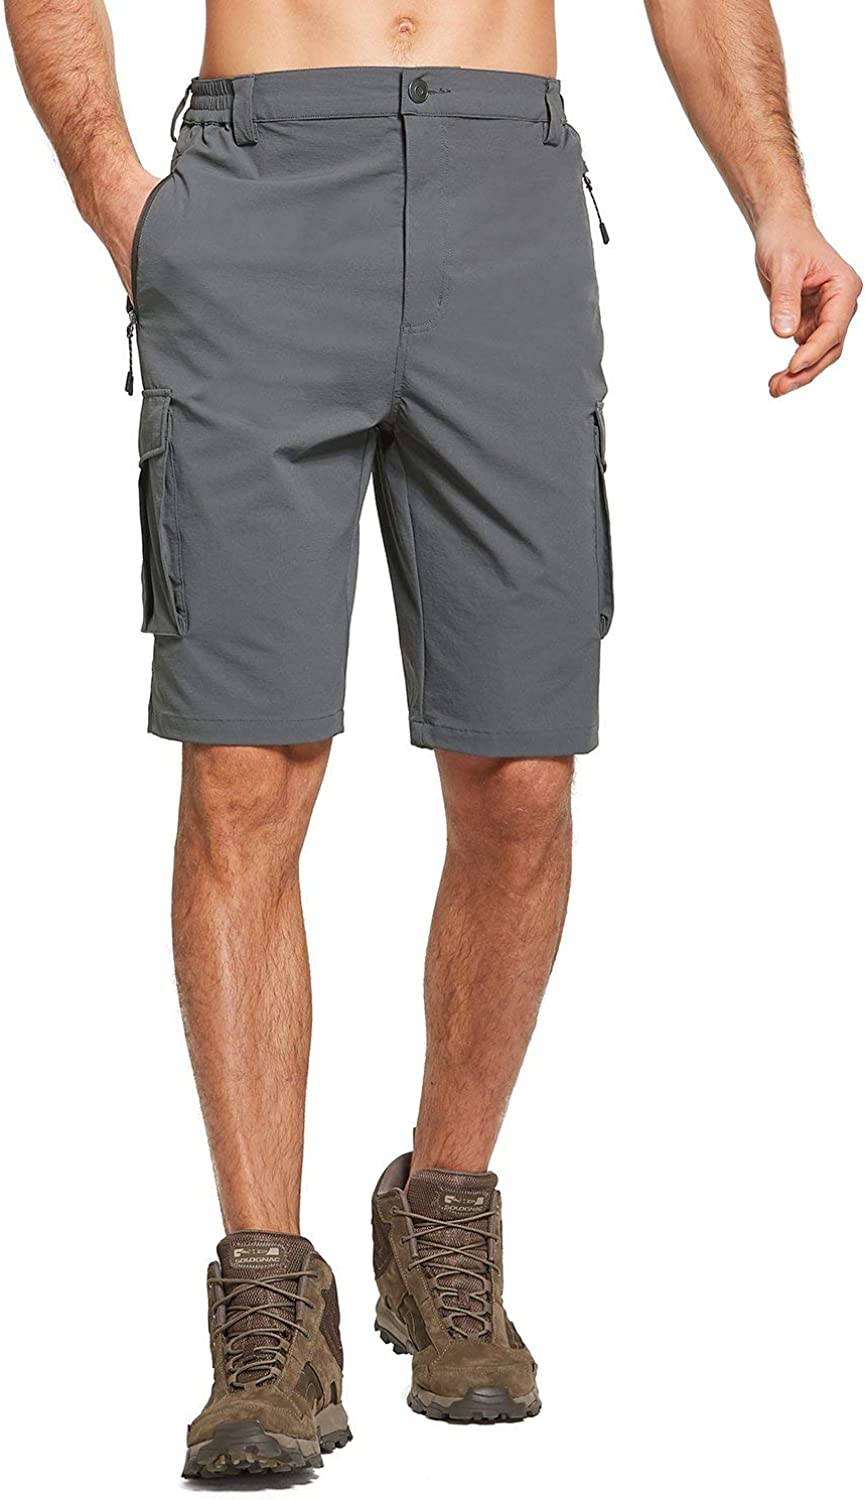 BALEAF Men's Stretch UPF 50+ Cargo Shorts Quick Dry Lightweight Breathable for Hiking, Camping, Travel: Clothing